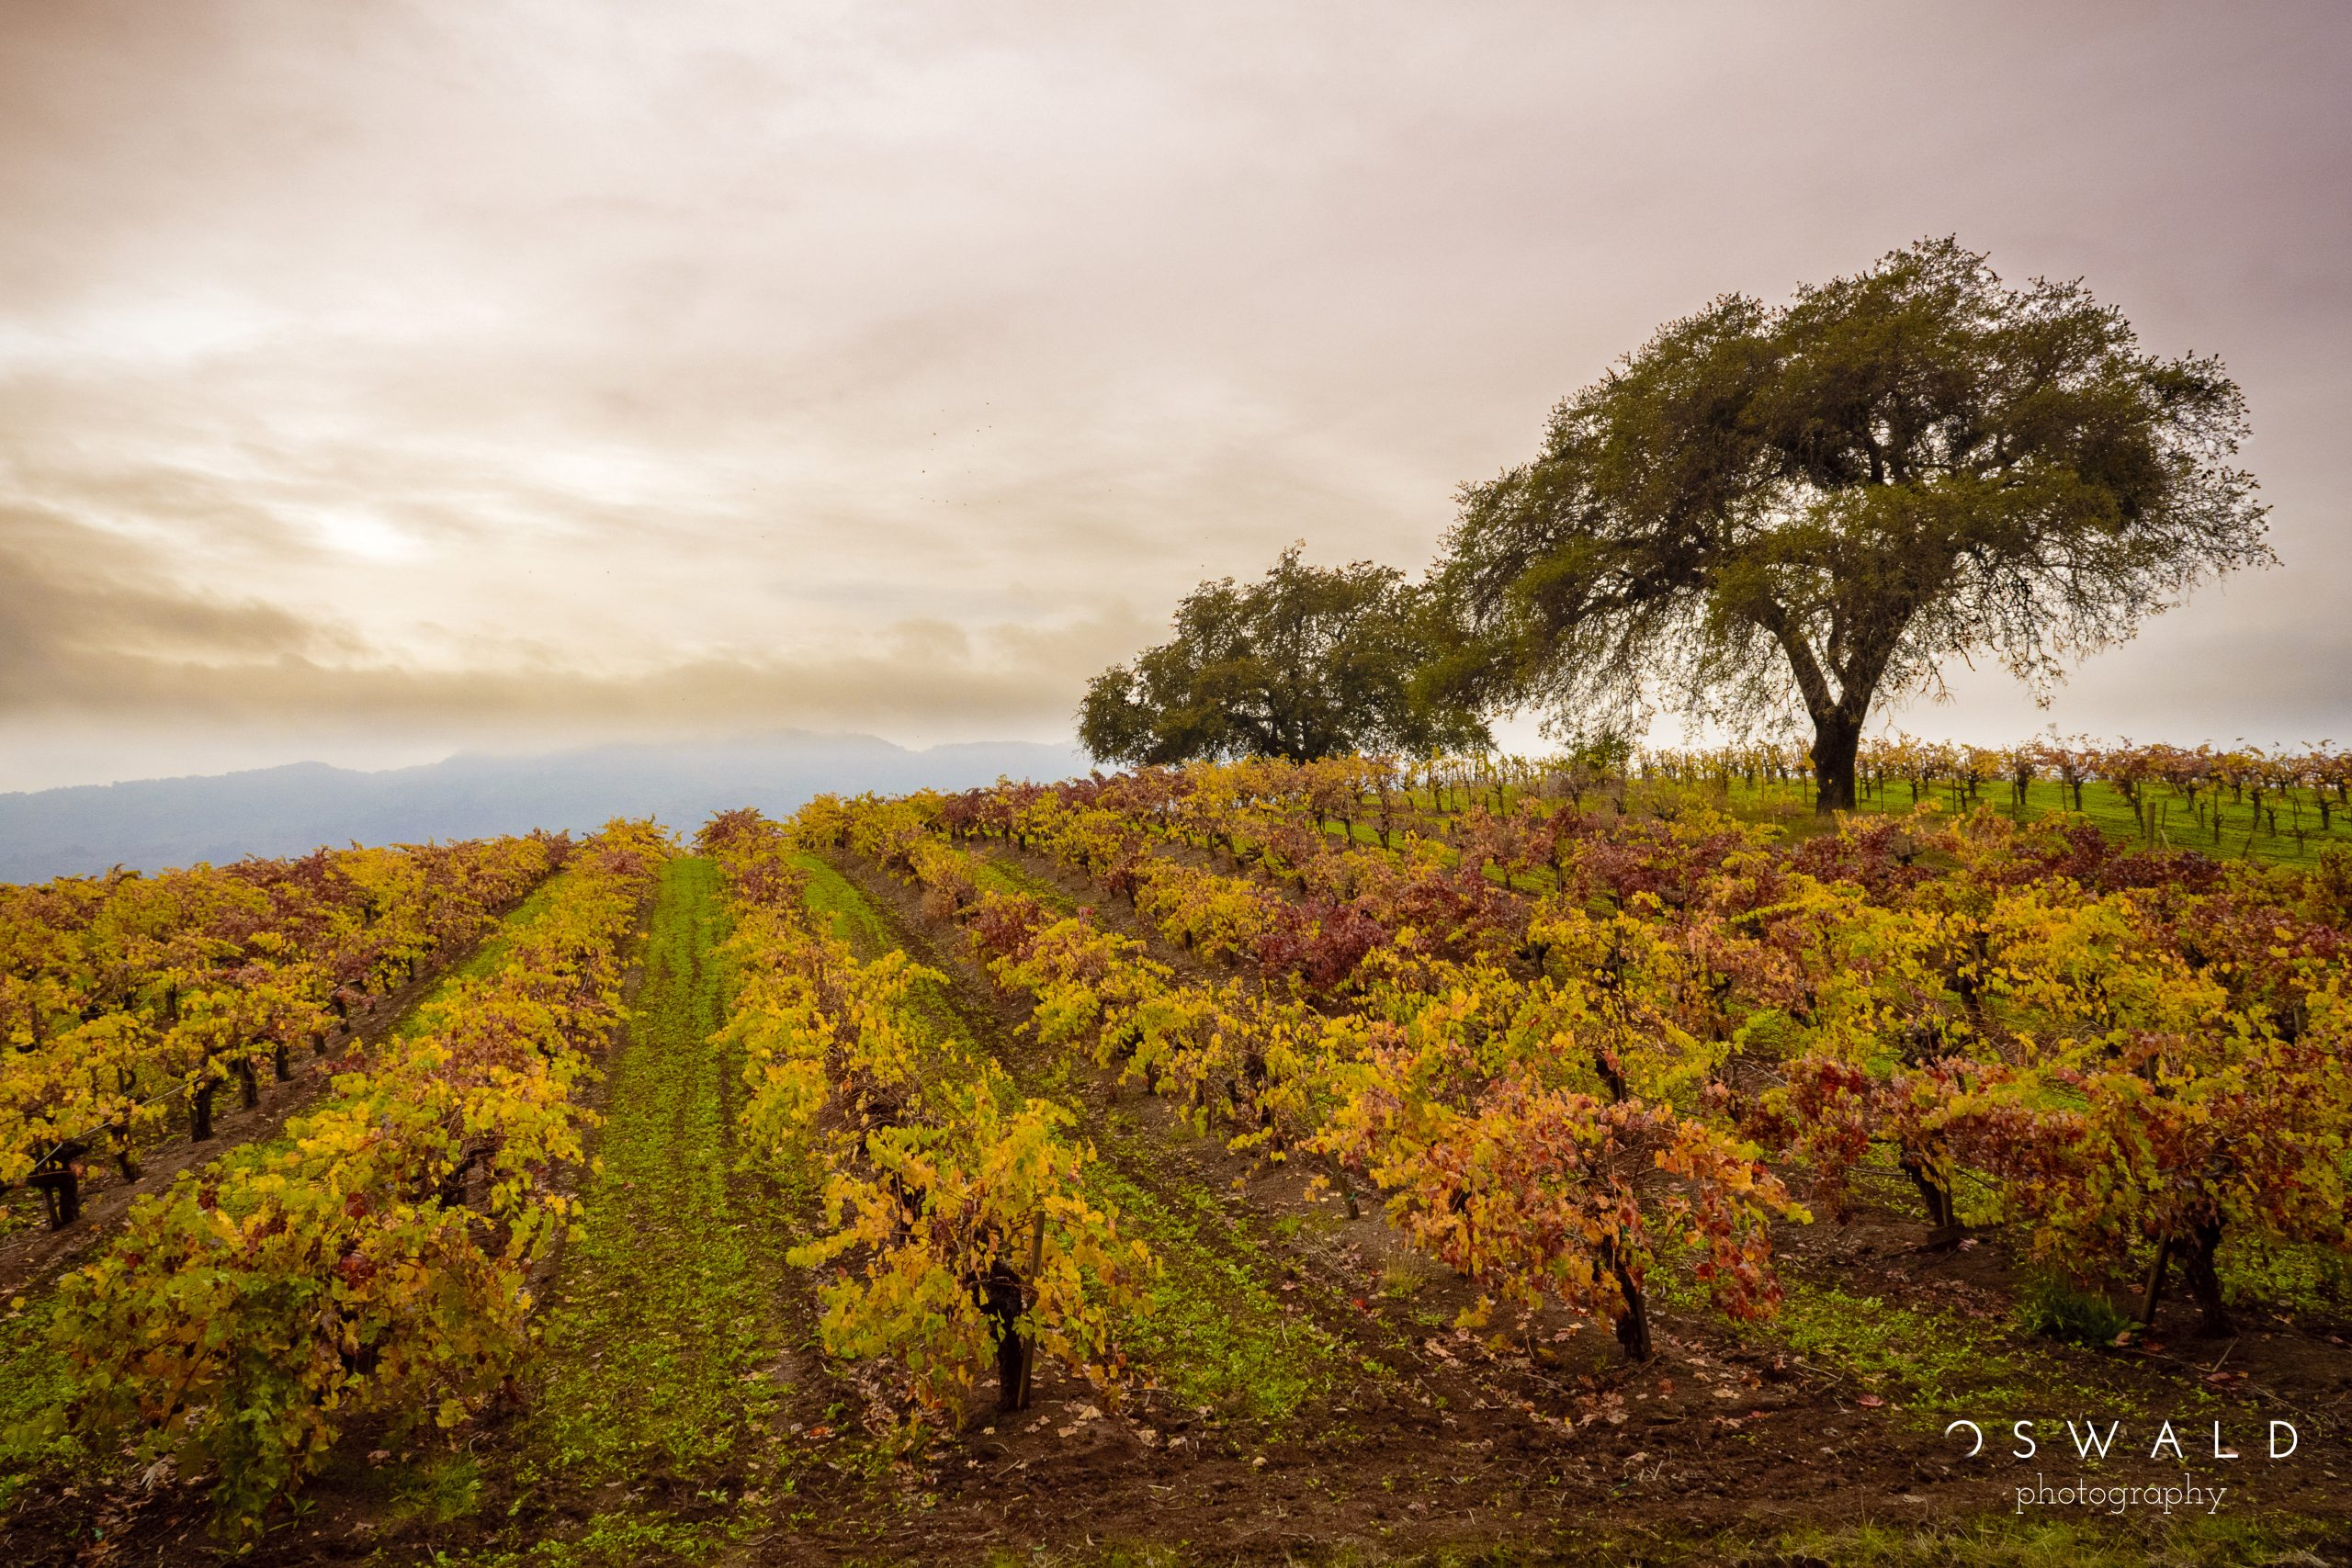 A dense patch of clouds blows a canopy over a vineyard in Sonoma, California.